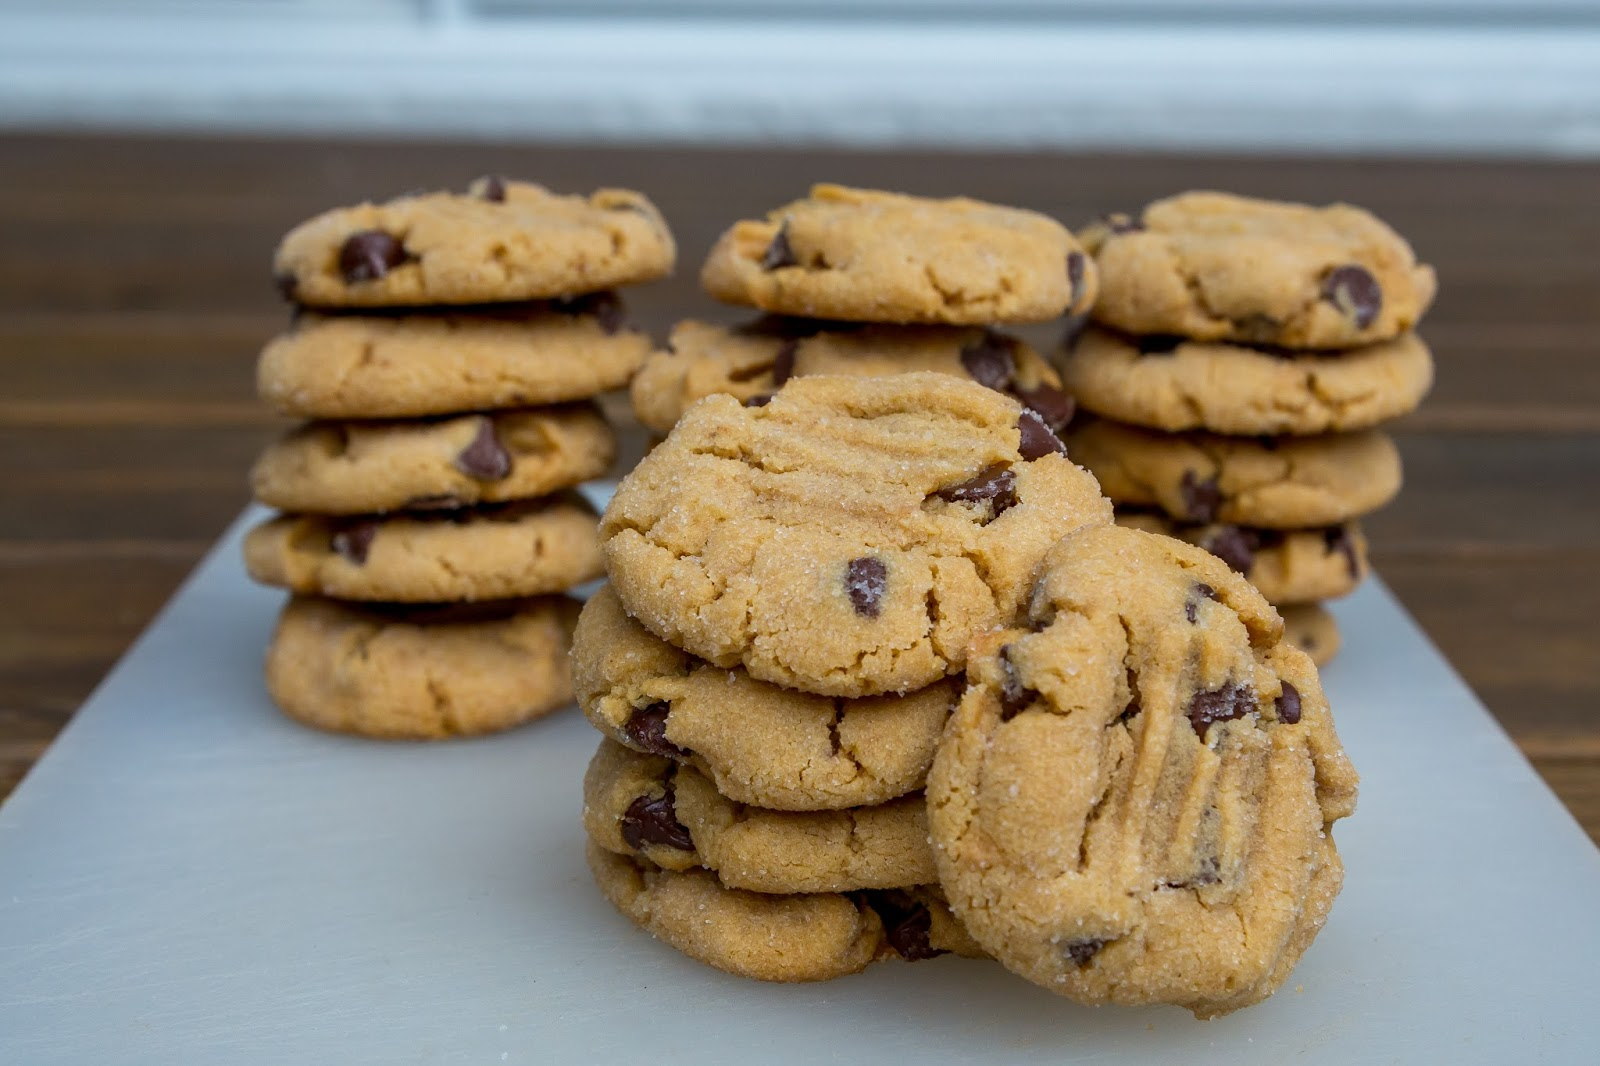 113 grams of butter: Peanut Butter Chocolate Chip Cookies